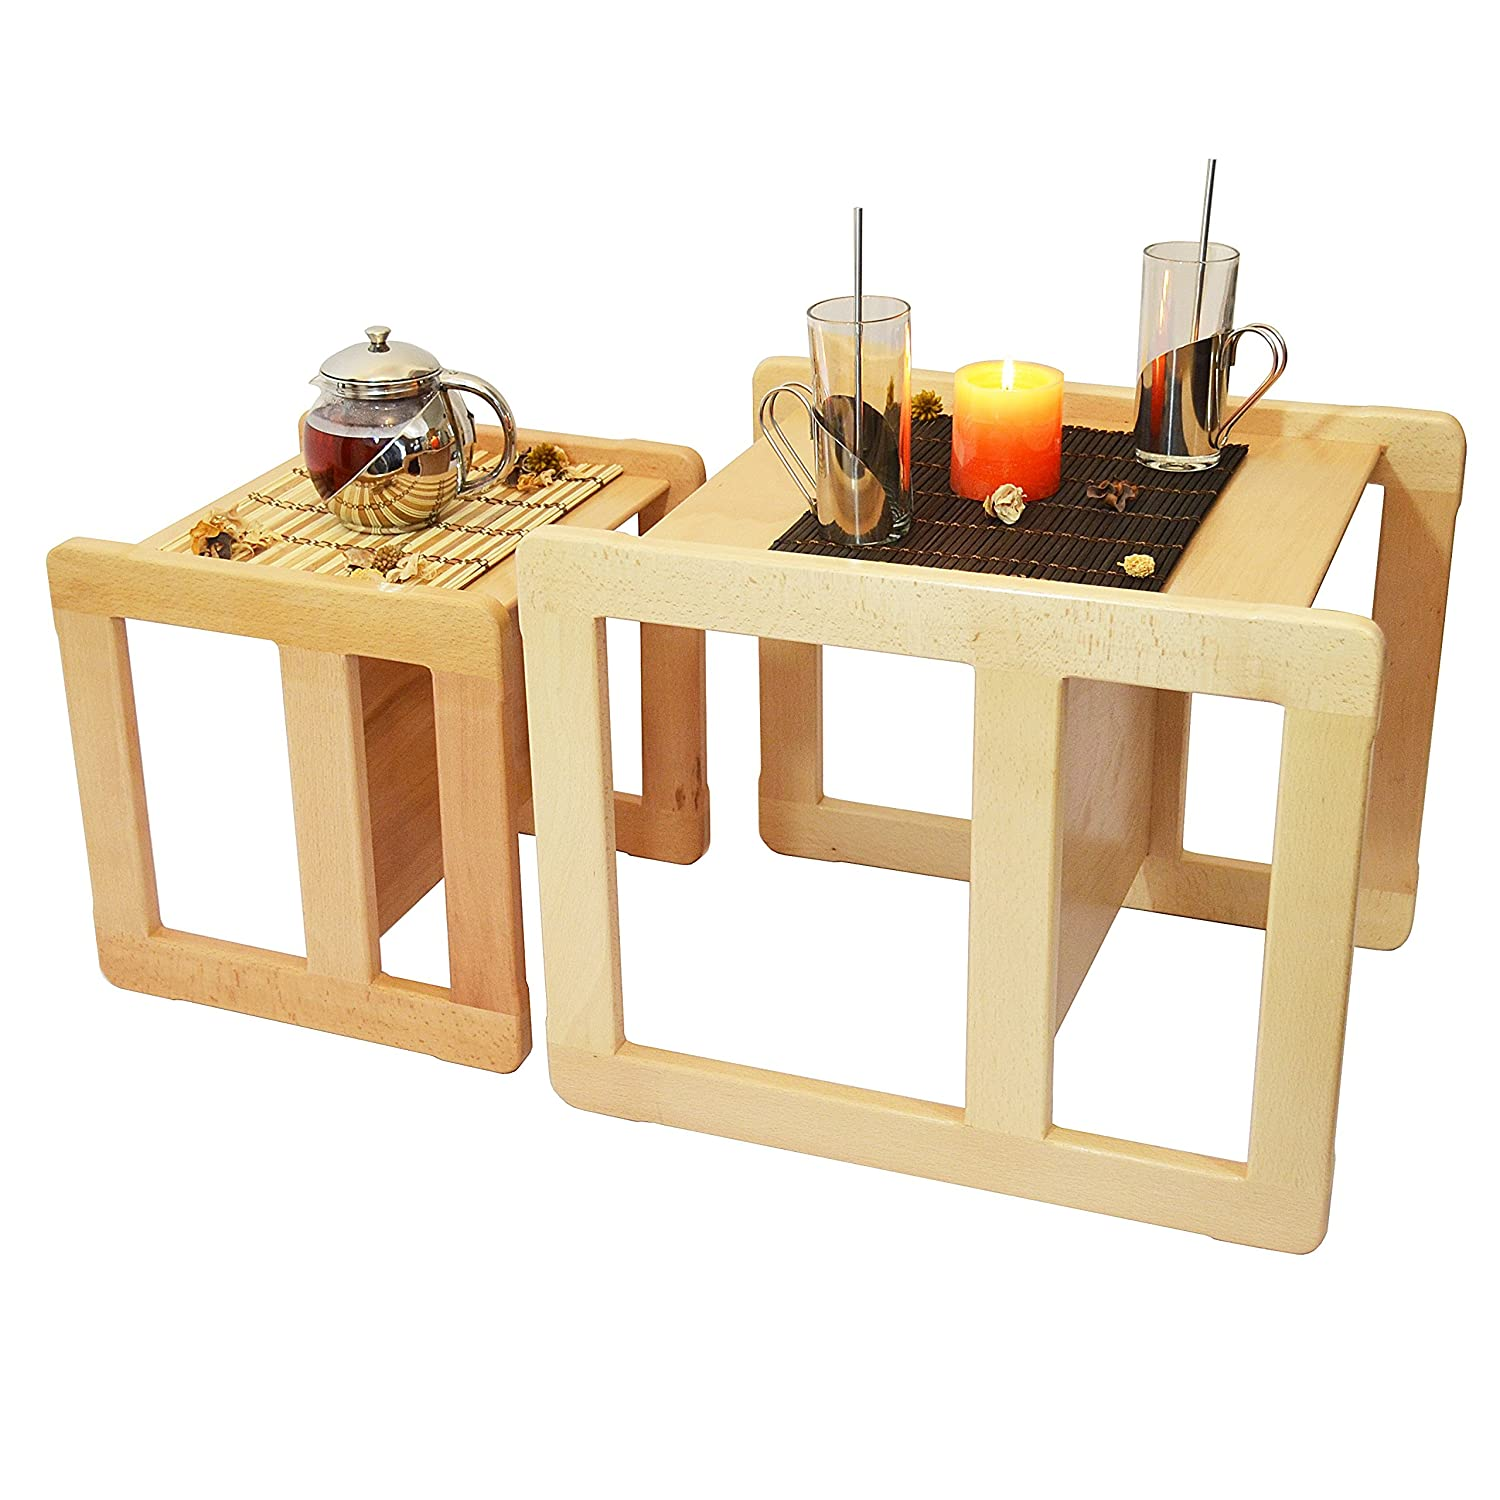 furniture multifunction. Obique 3 In 1 Children\u0027s Multifunctional Furniture Set Of 2, One Small Chair Or Table And Large Beech Wood, Natural: Amazon.co.uk: Multifunction O